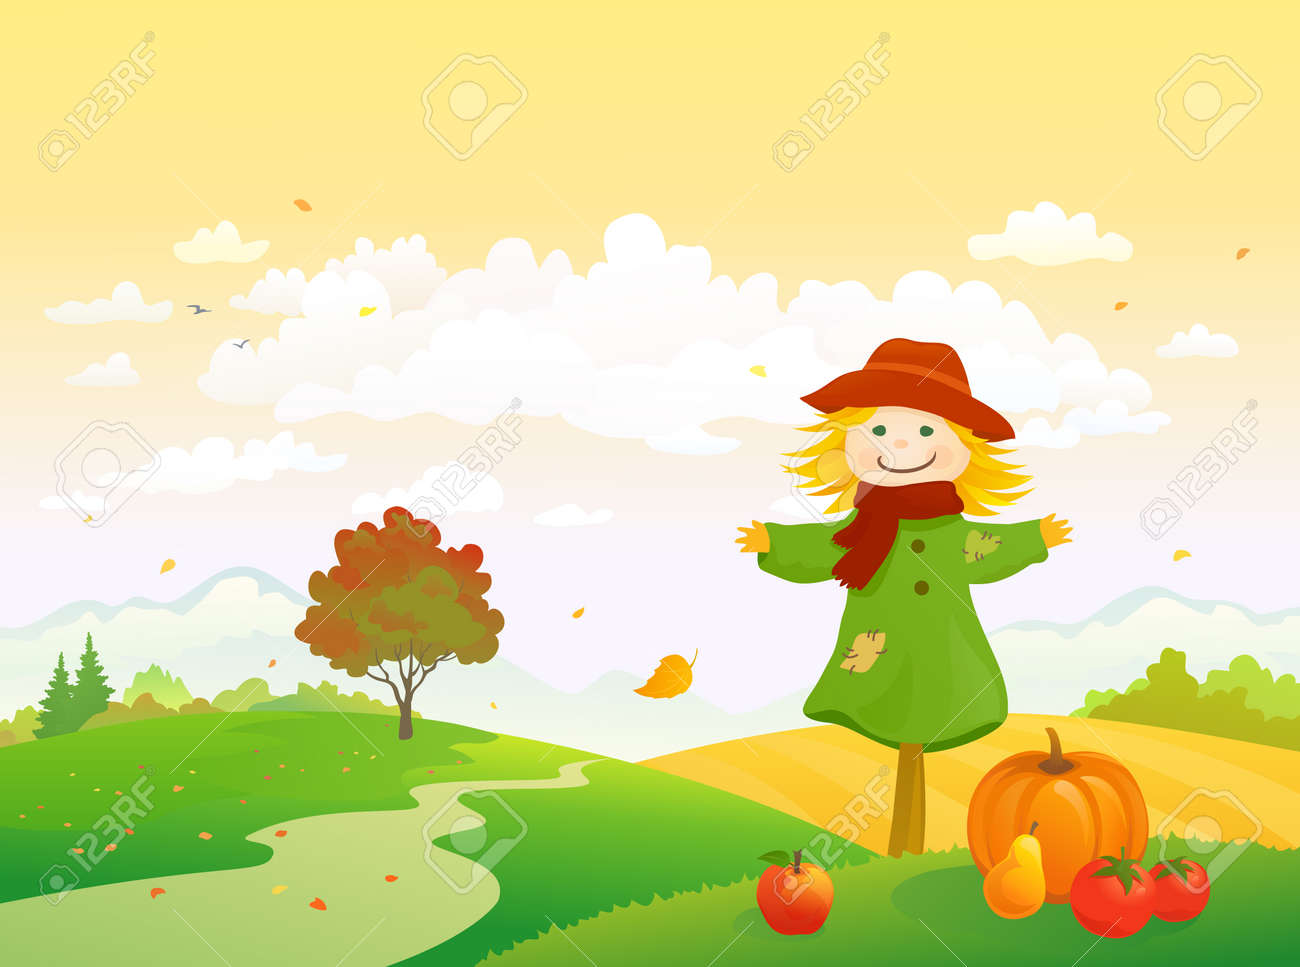 Vector illustration of an autumn harvest scene with a cute scarecrow, Thanksgiving landscape - 153978006